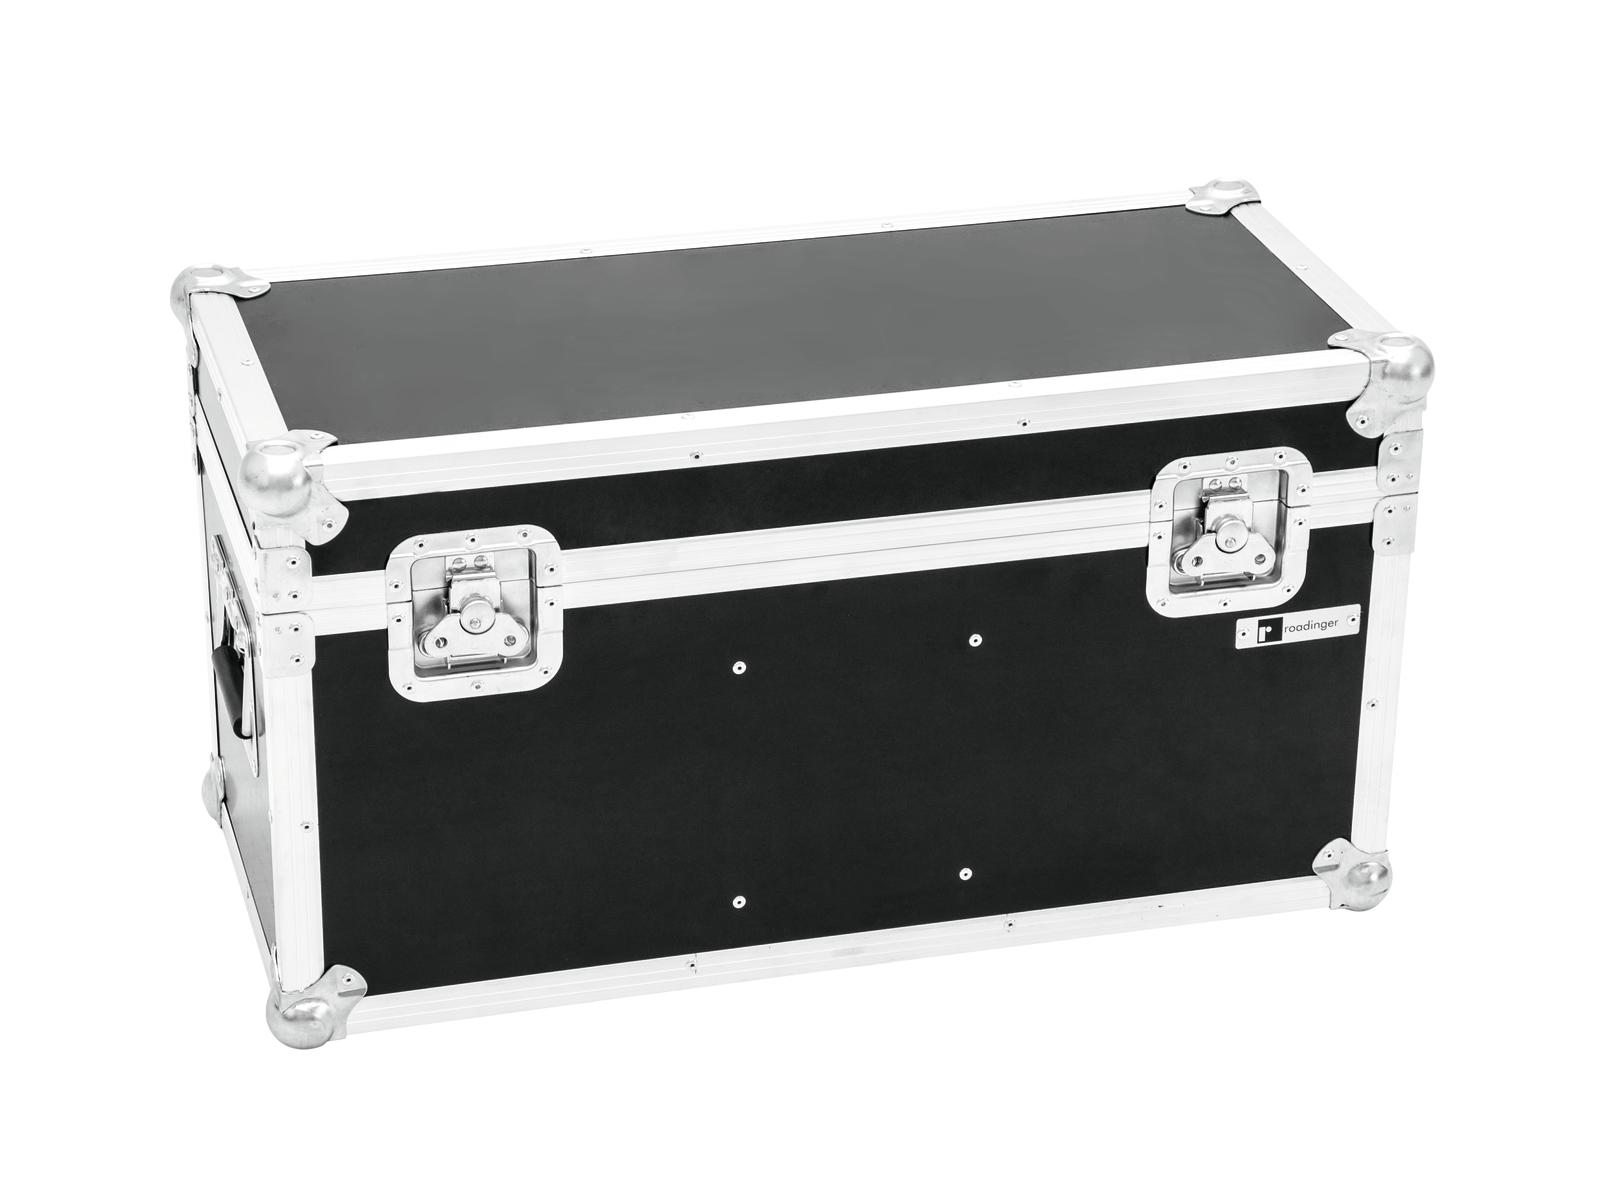 ROADINGER Flightcase 2x LED TM